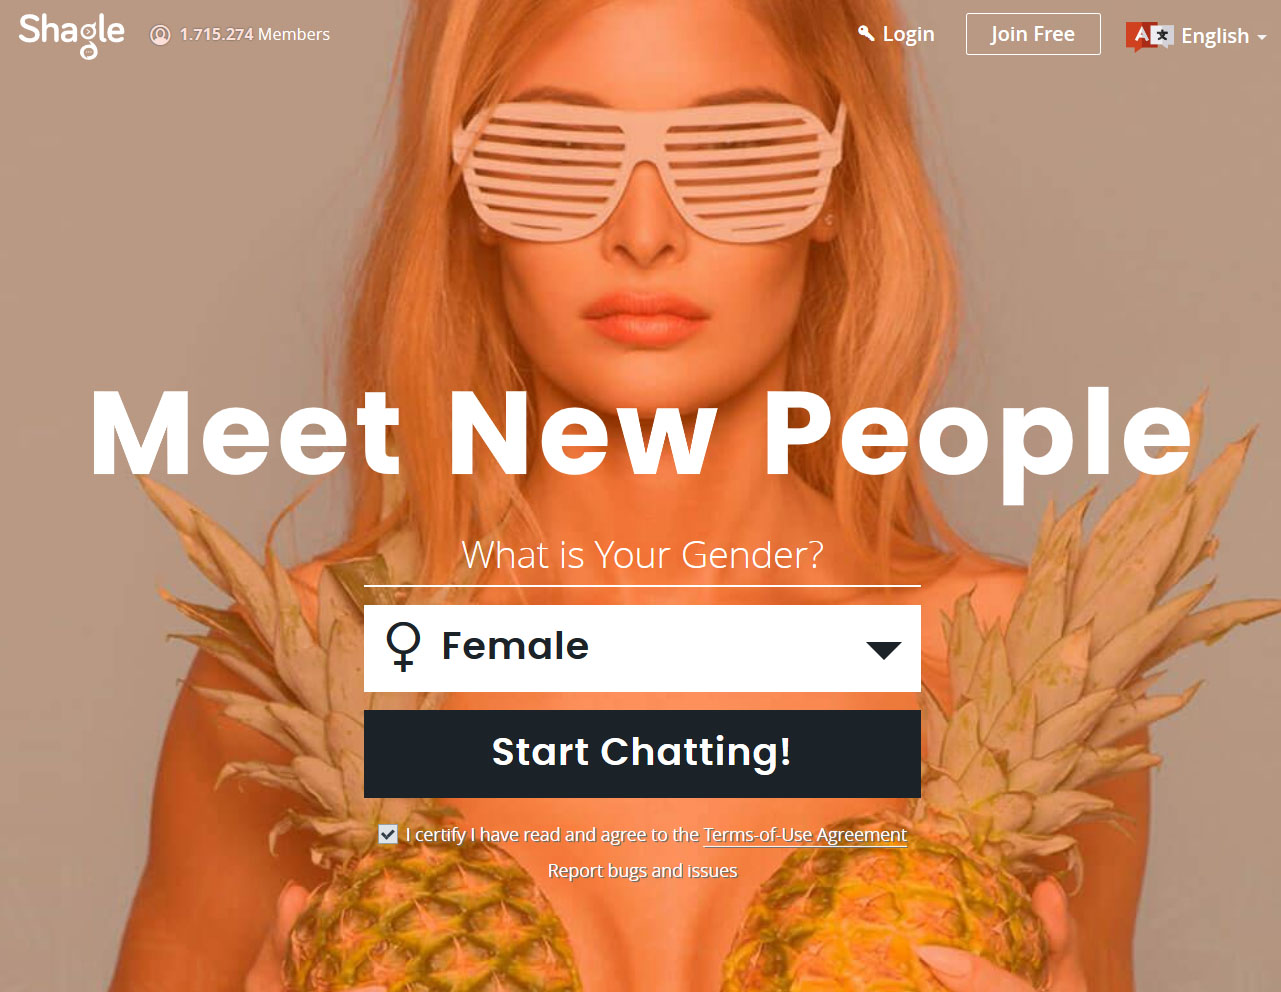 Video Chat with Friends for free